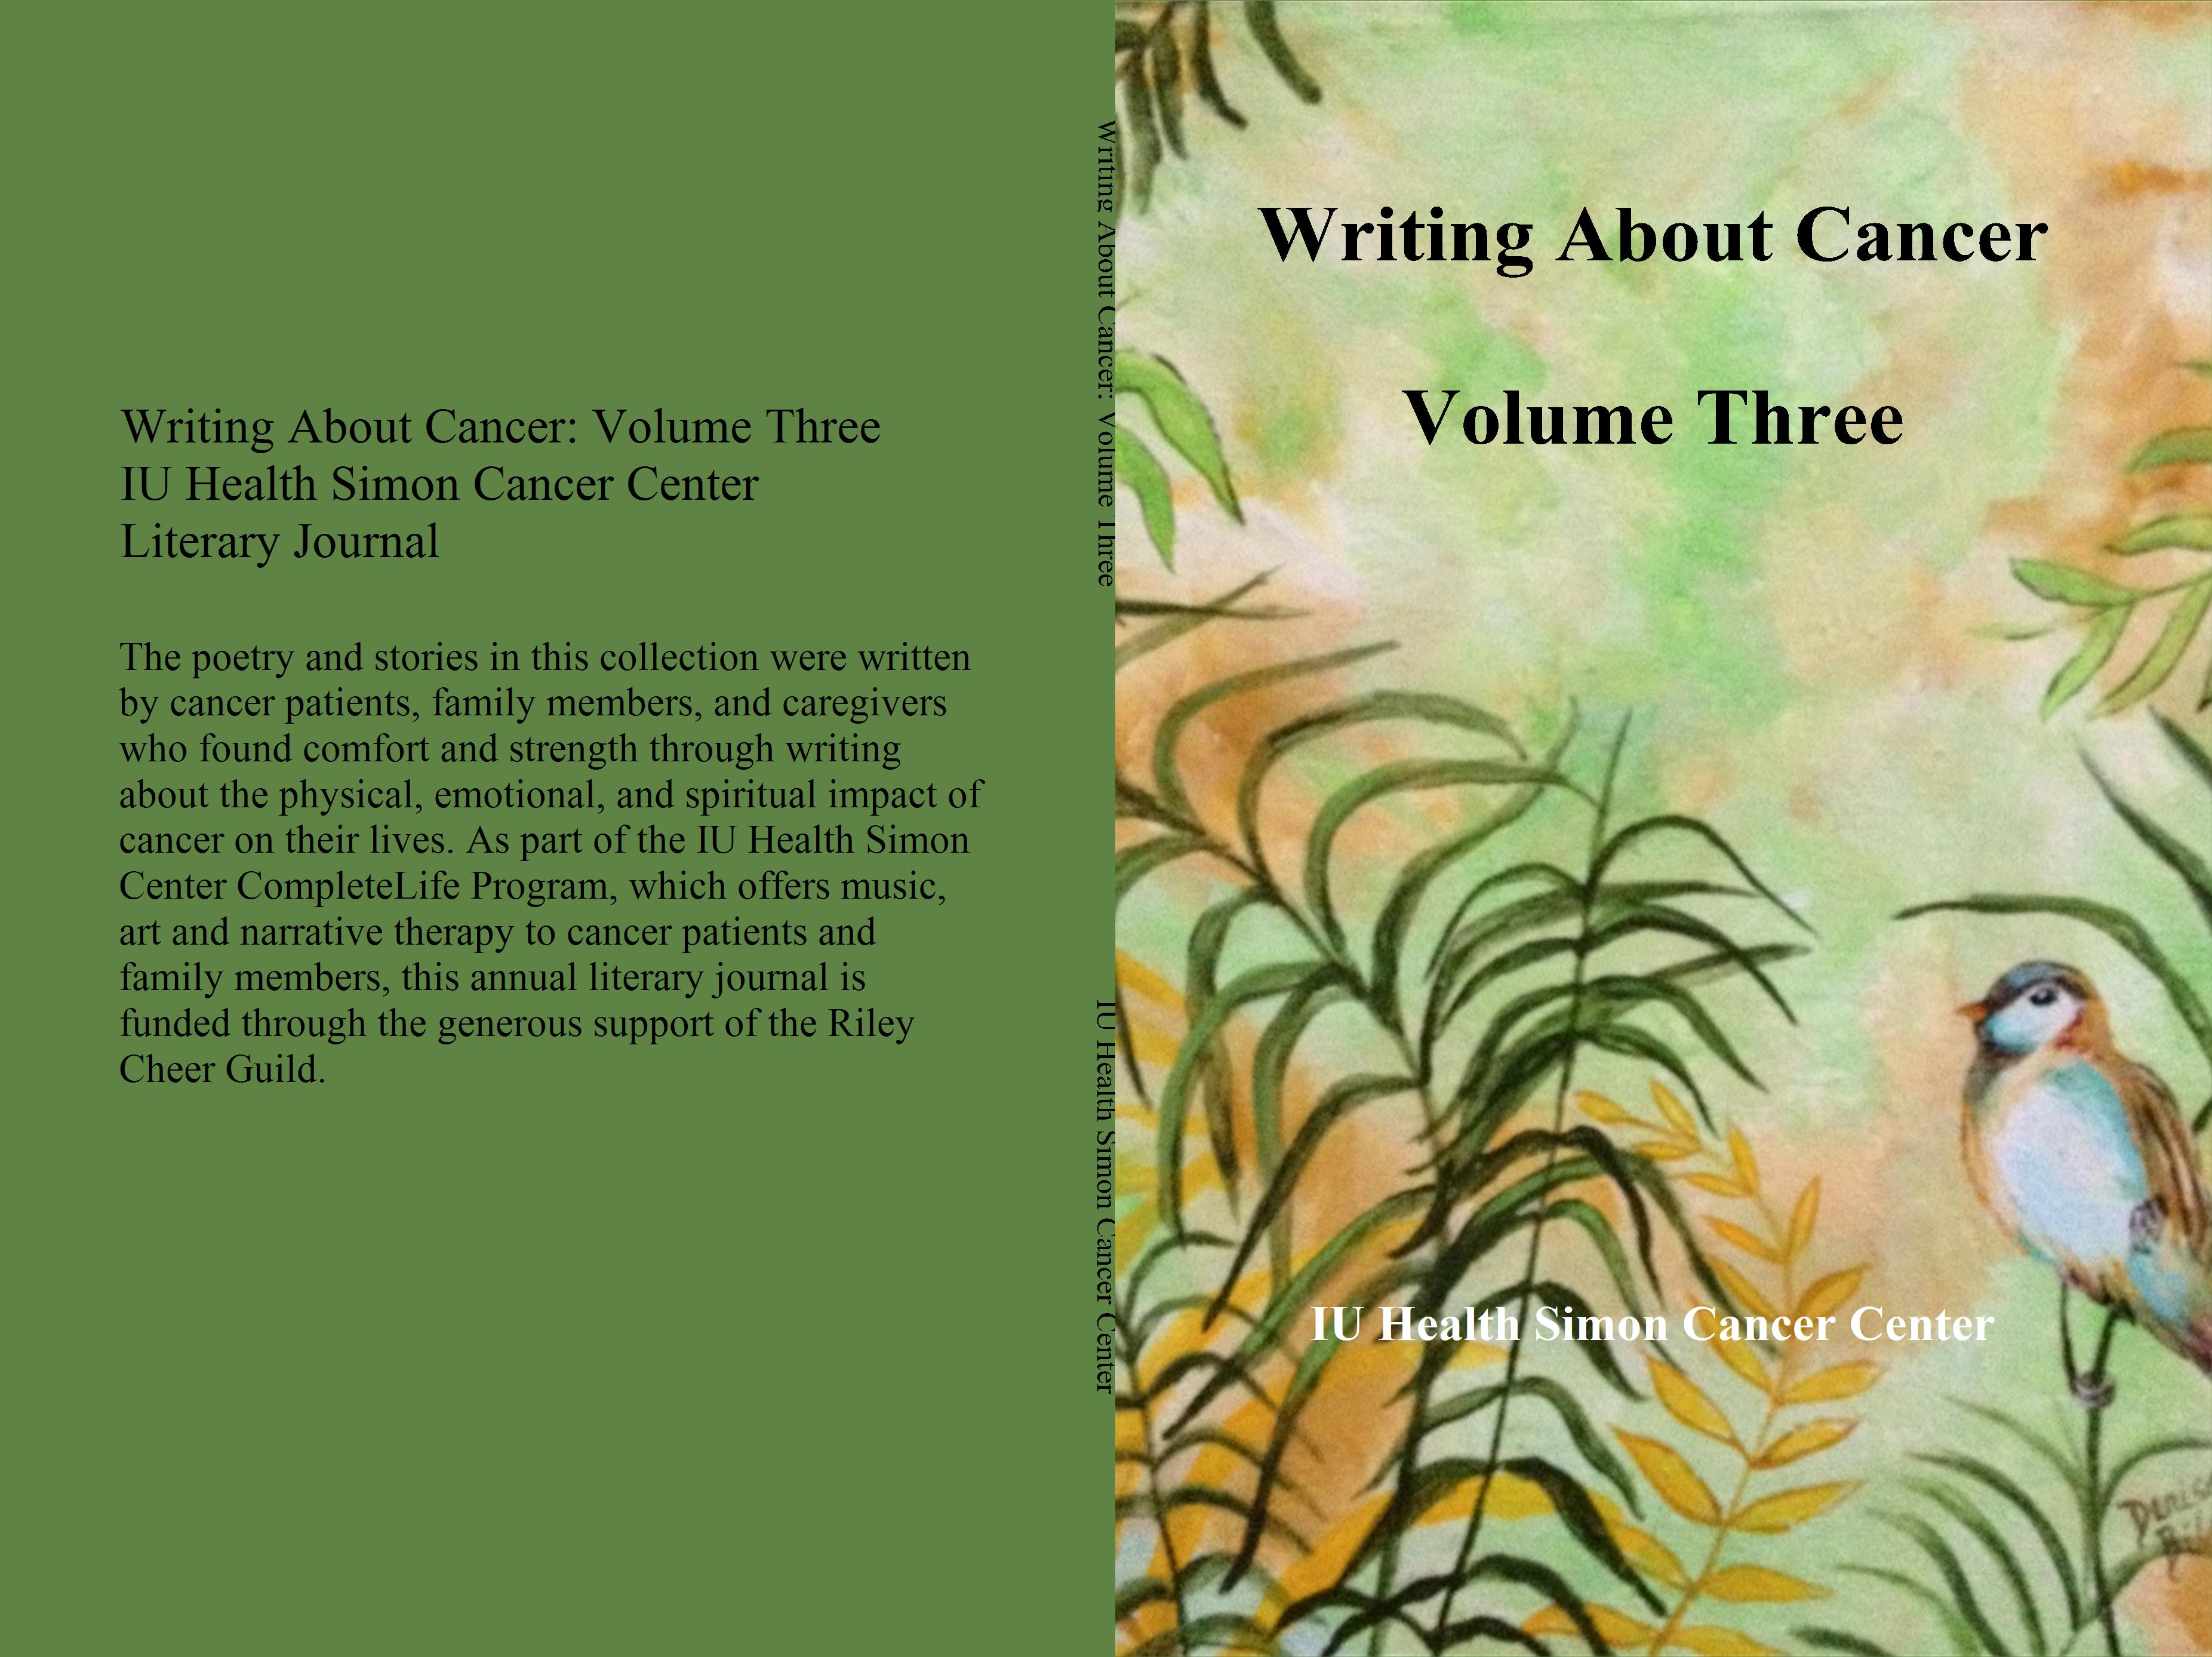 Writing About Cancer Volume Three cover image